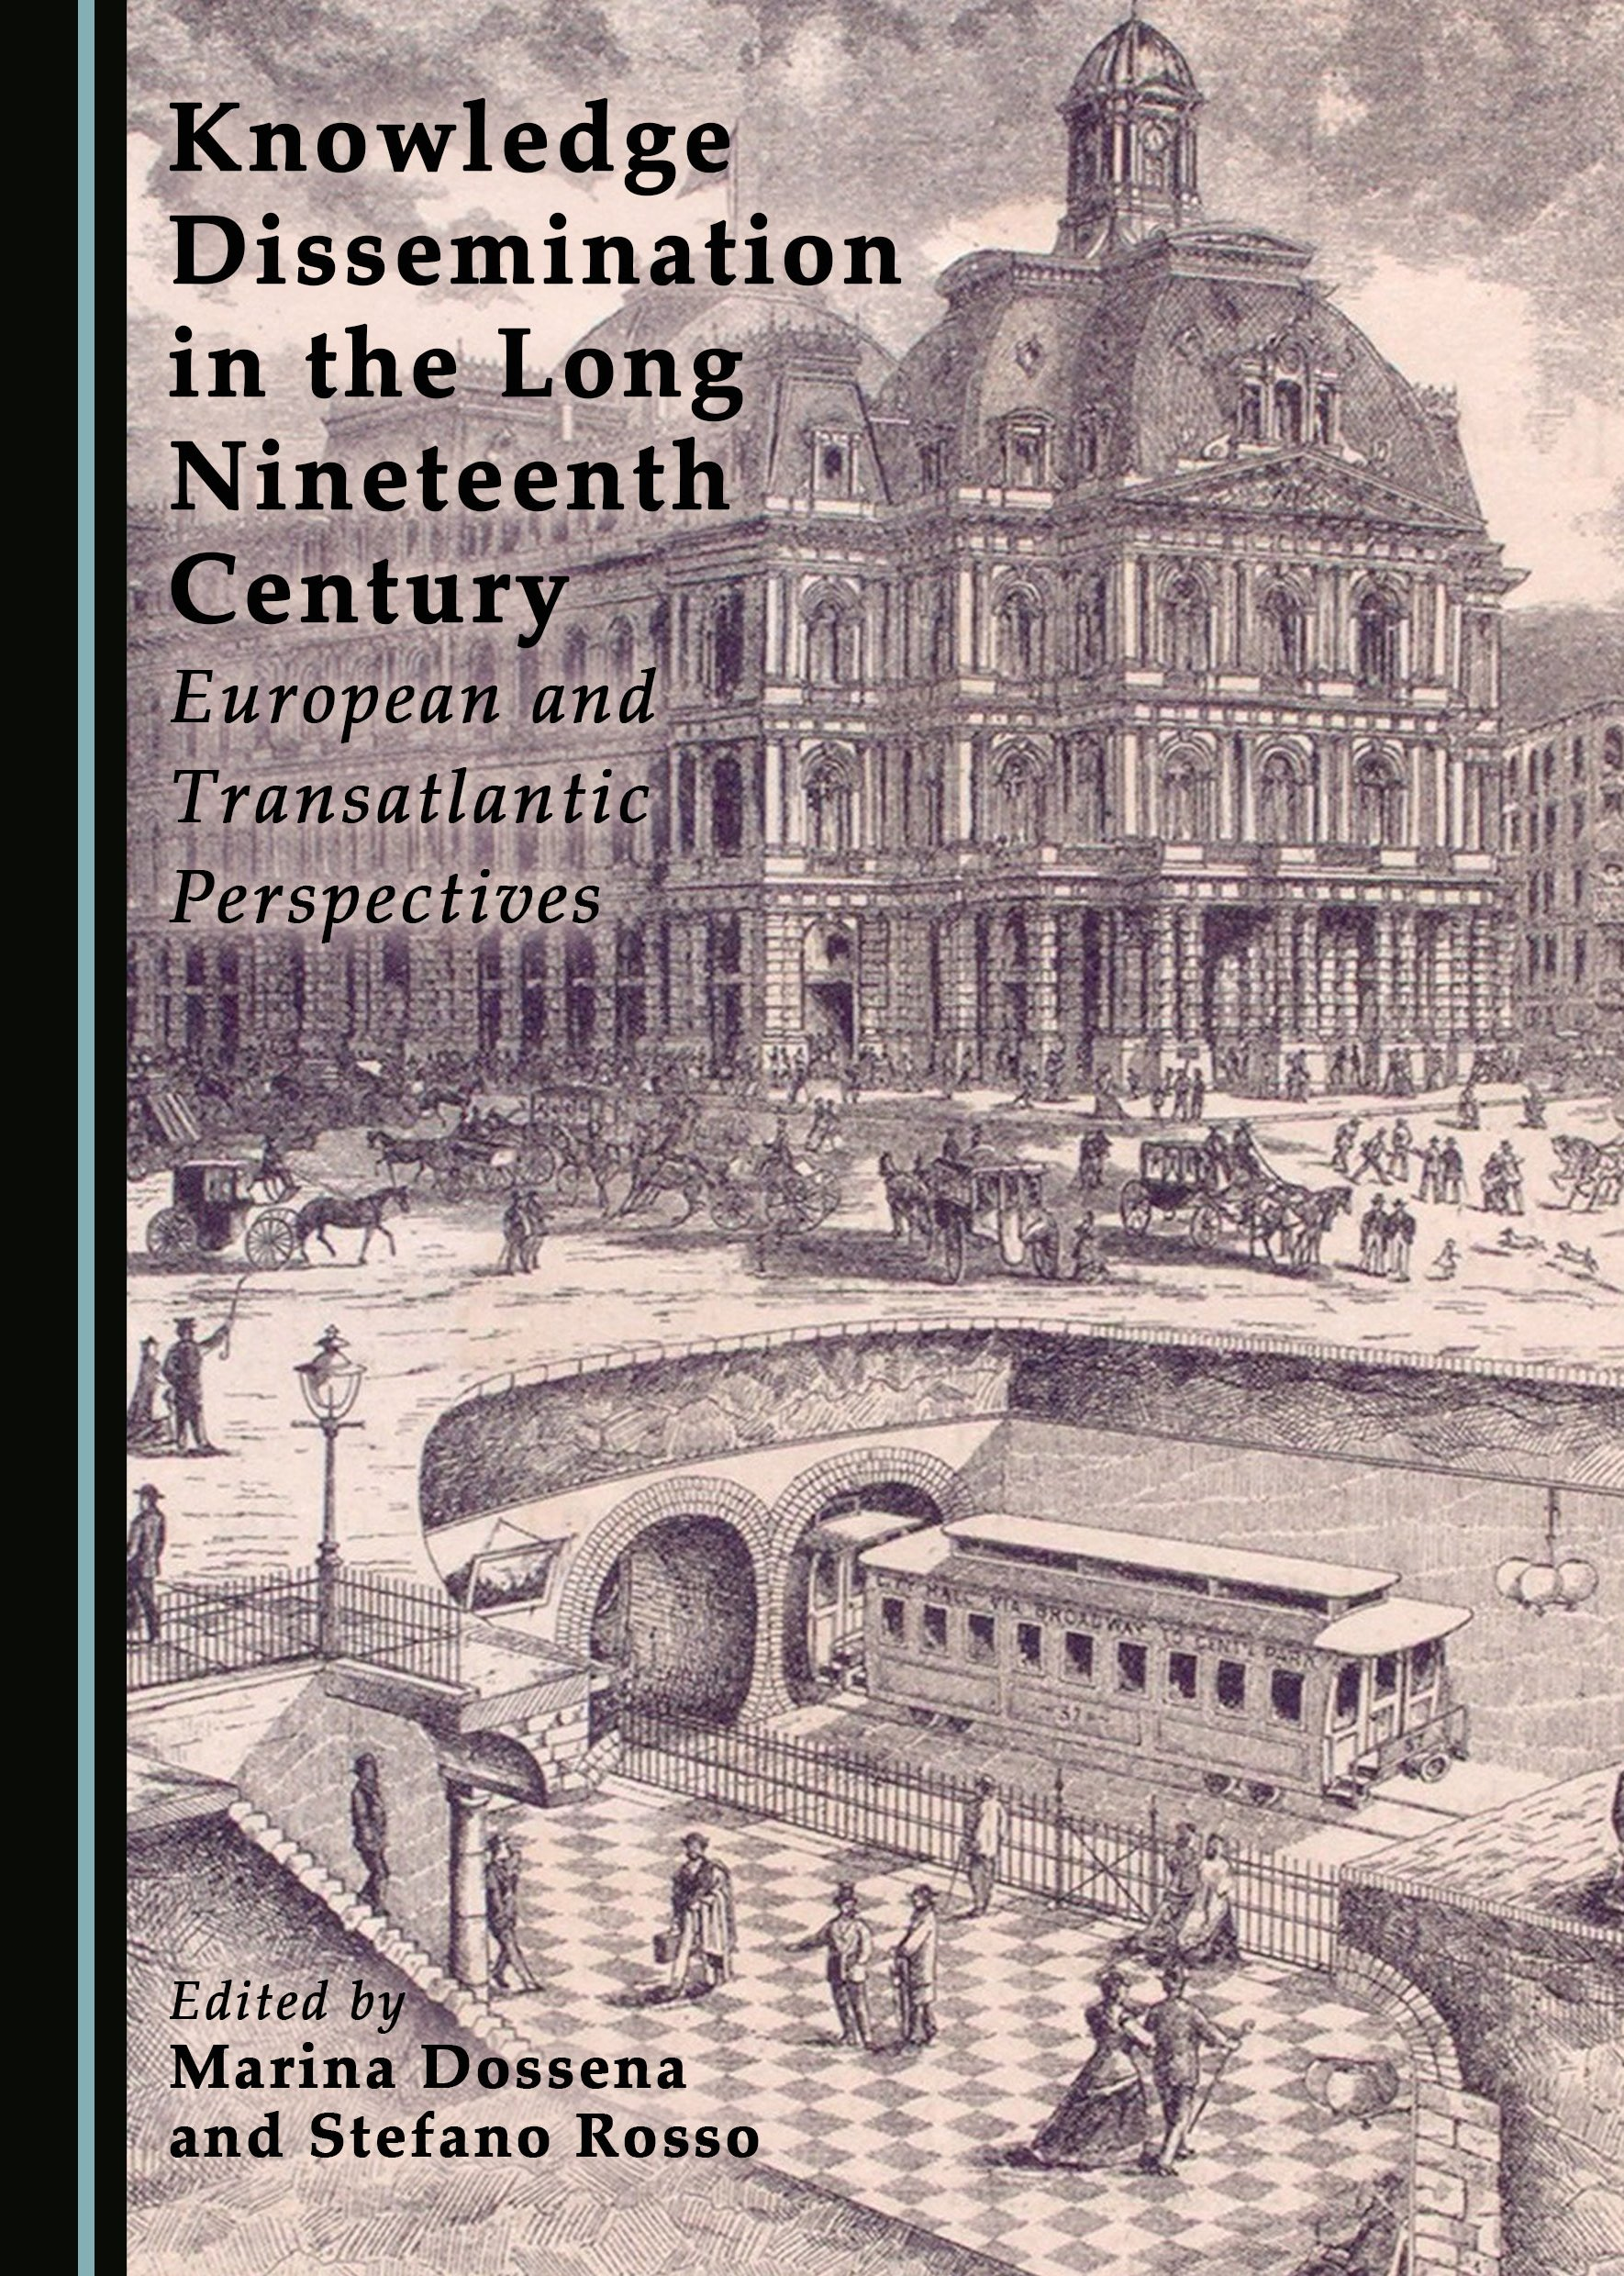 Knowledge Dissemination in the Long Nineteenth Century: European and Transatlantic Perspectives